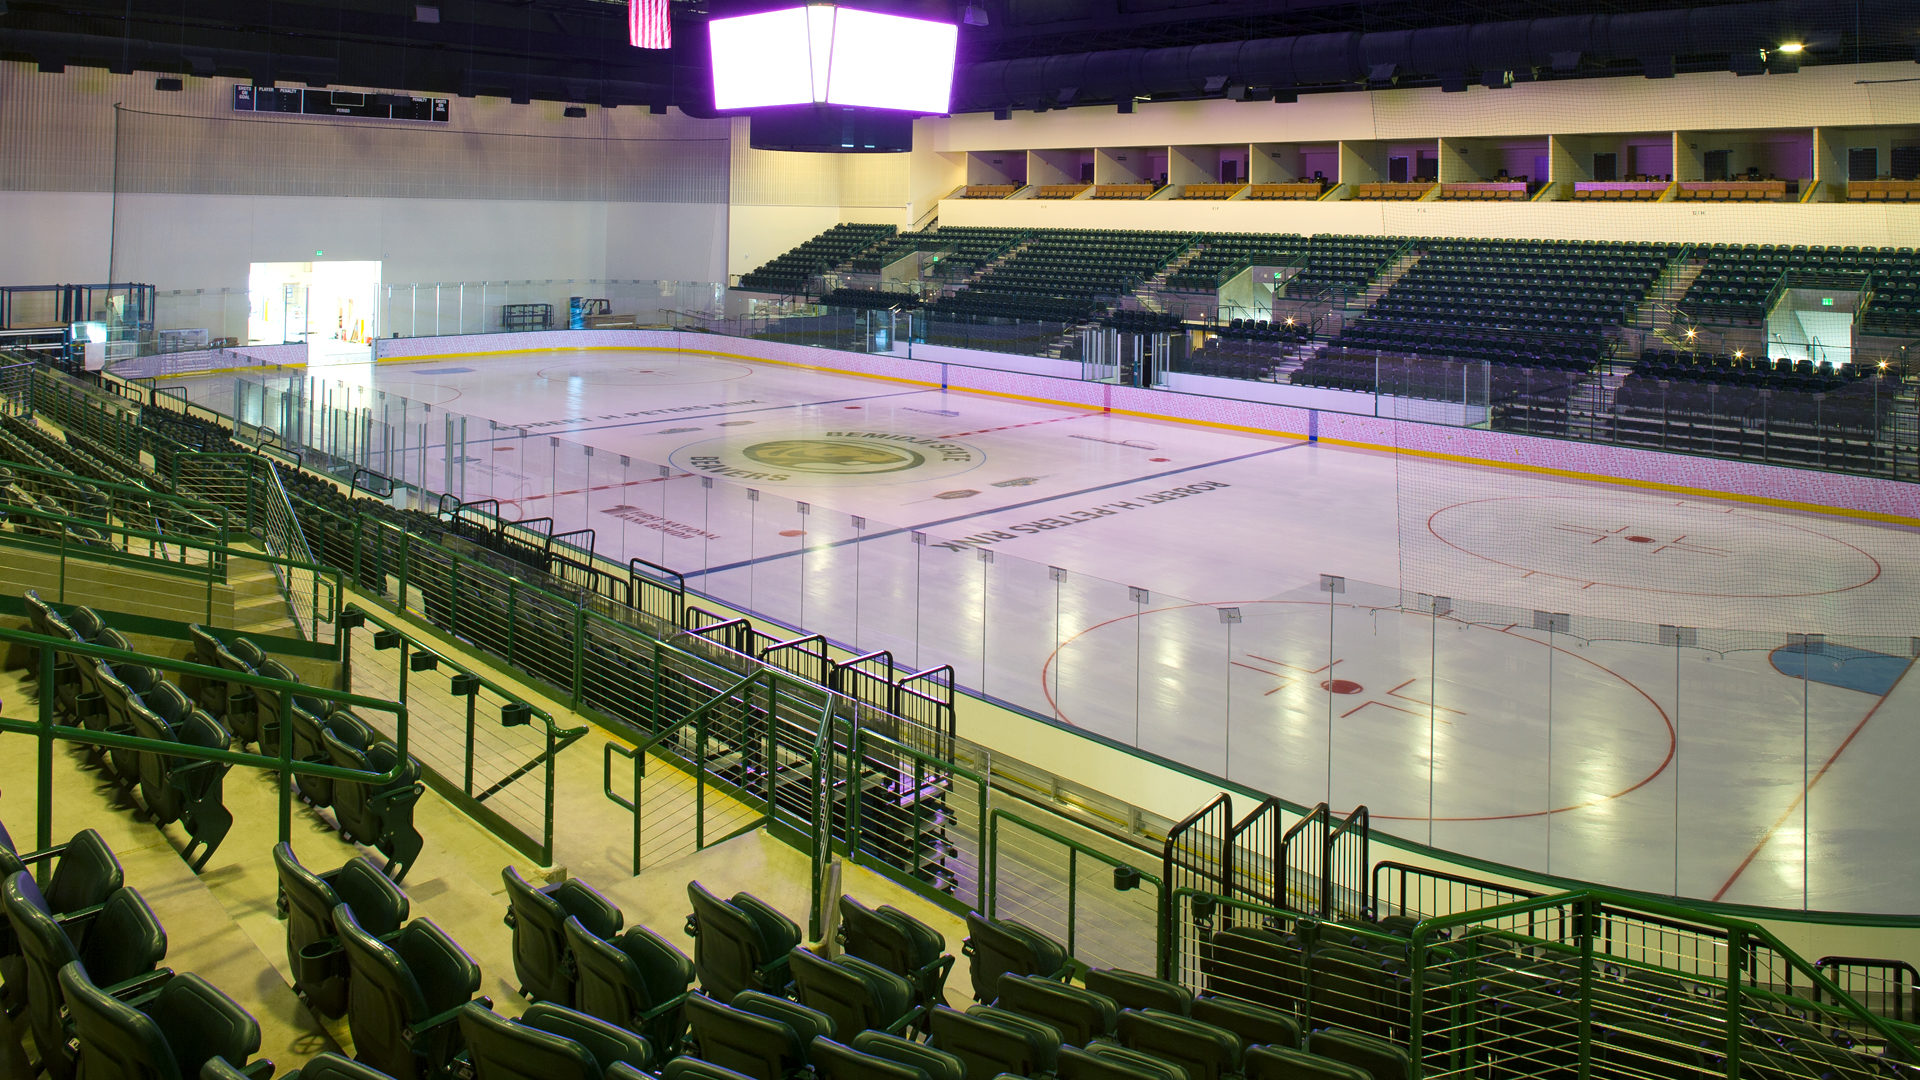 Sanford Center Ice Arena Bemidji MN Government BSU Home Hockey Rink